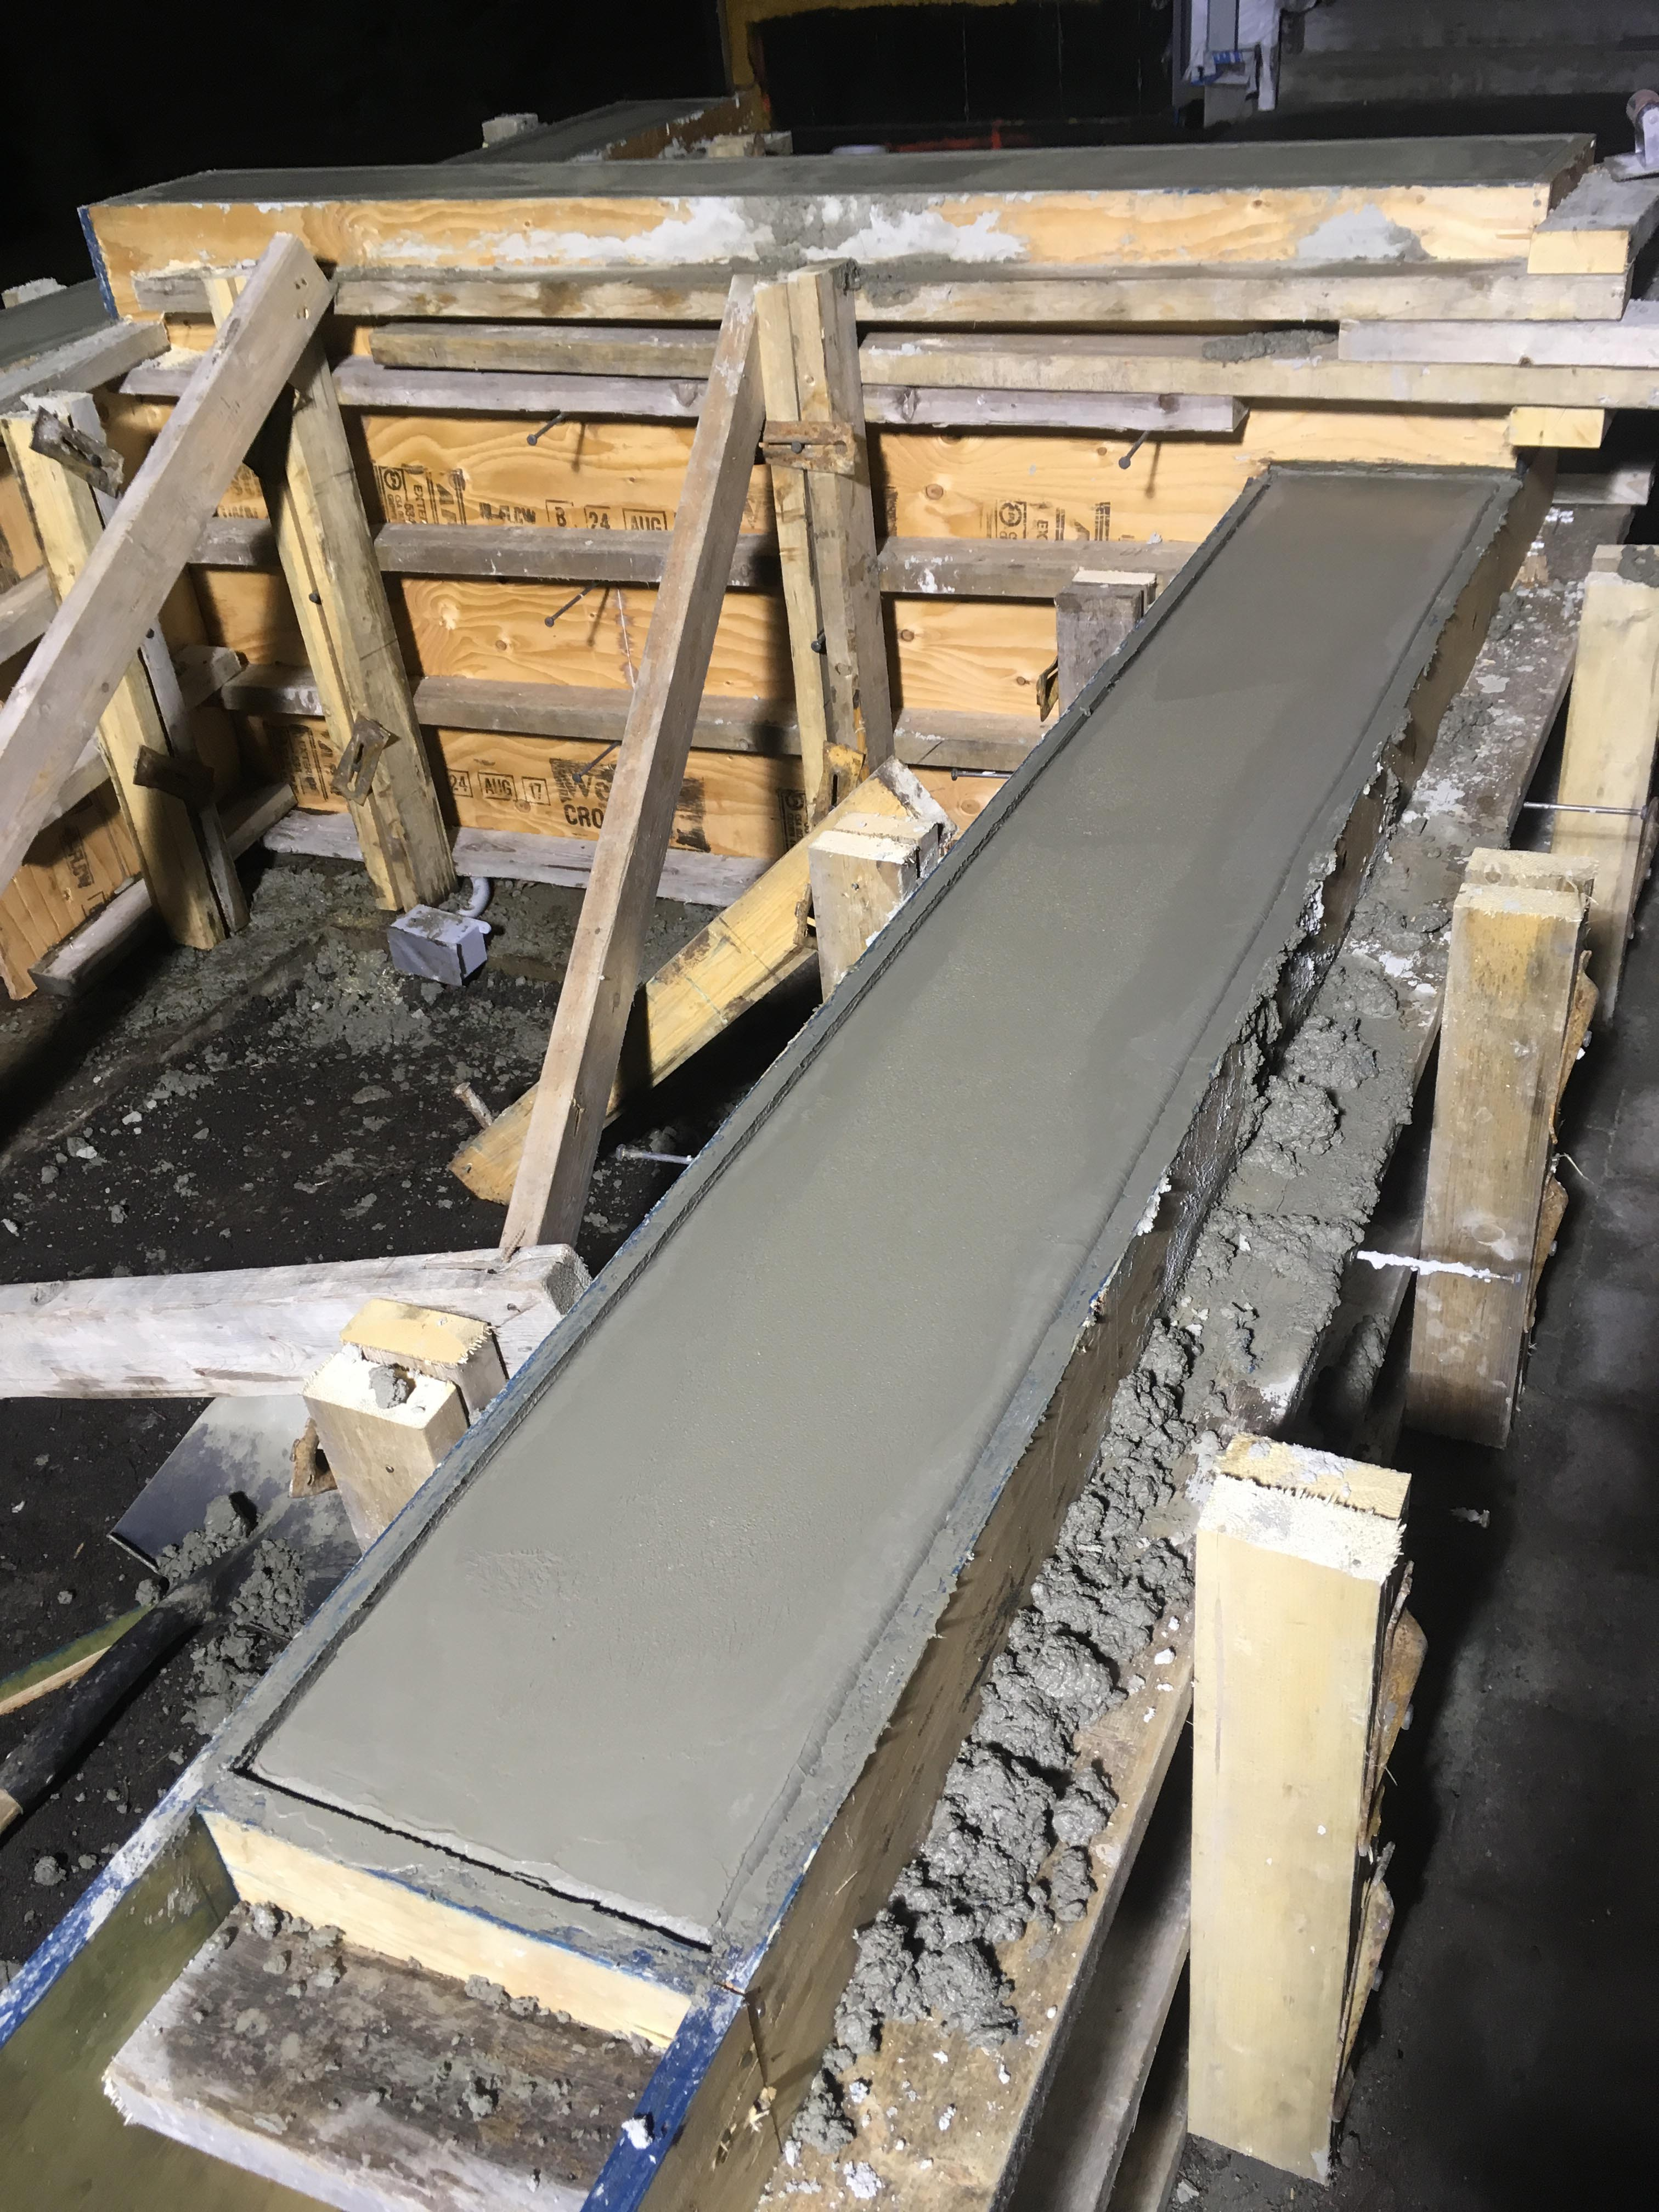 Pound 4 Pound, Framing and Forming. Concrete smoothing